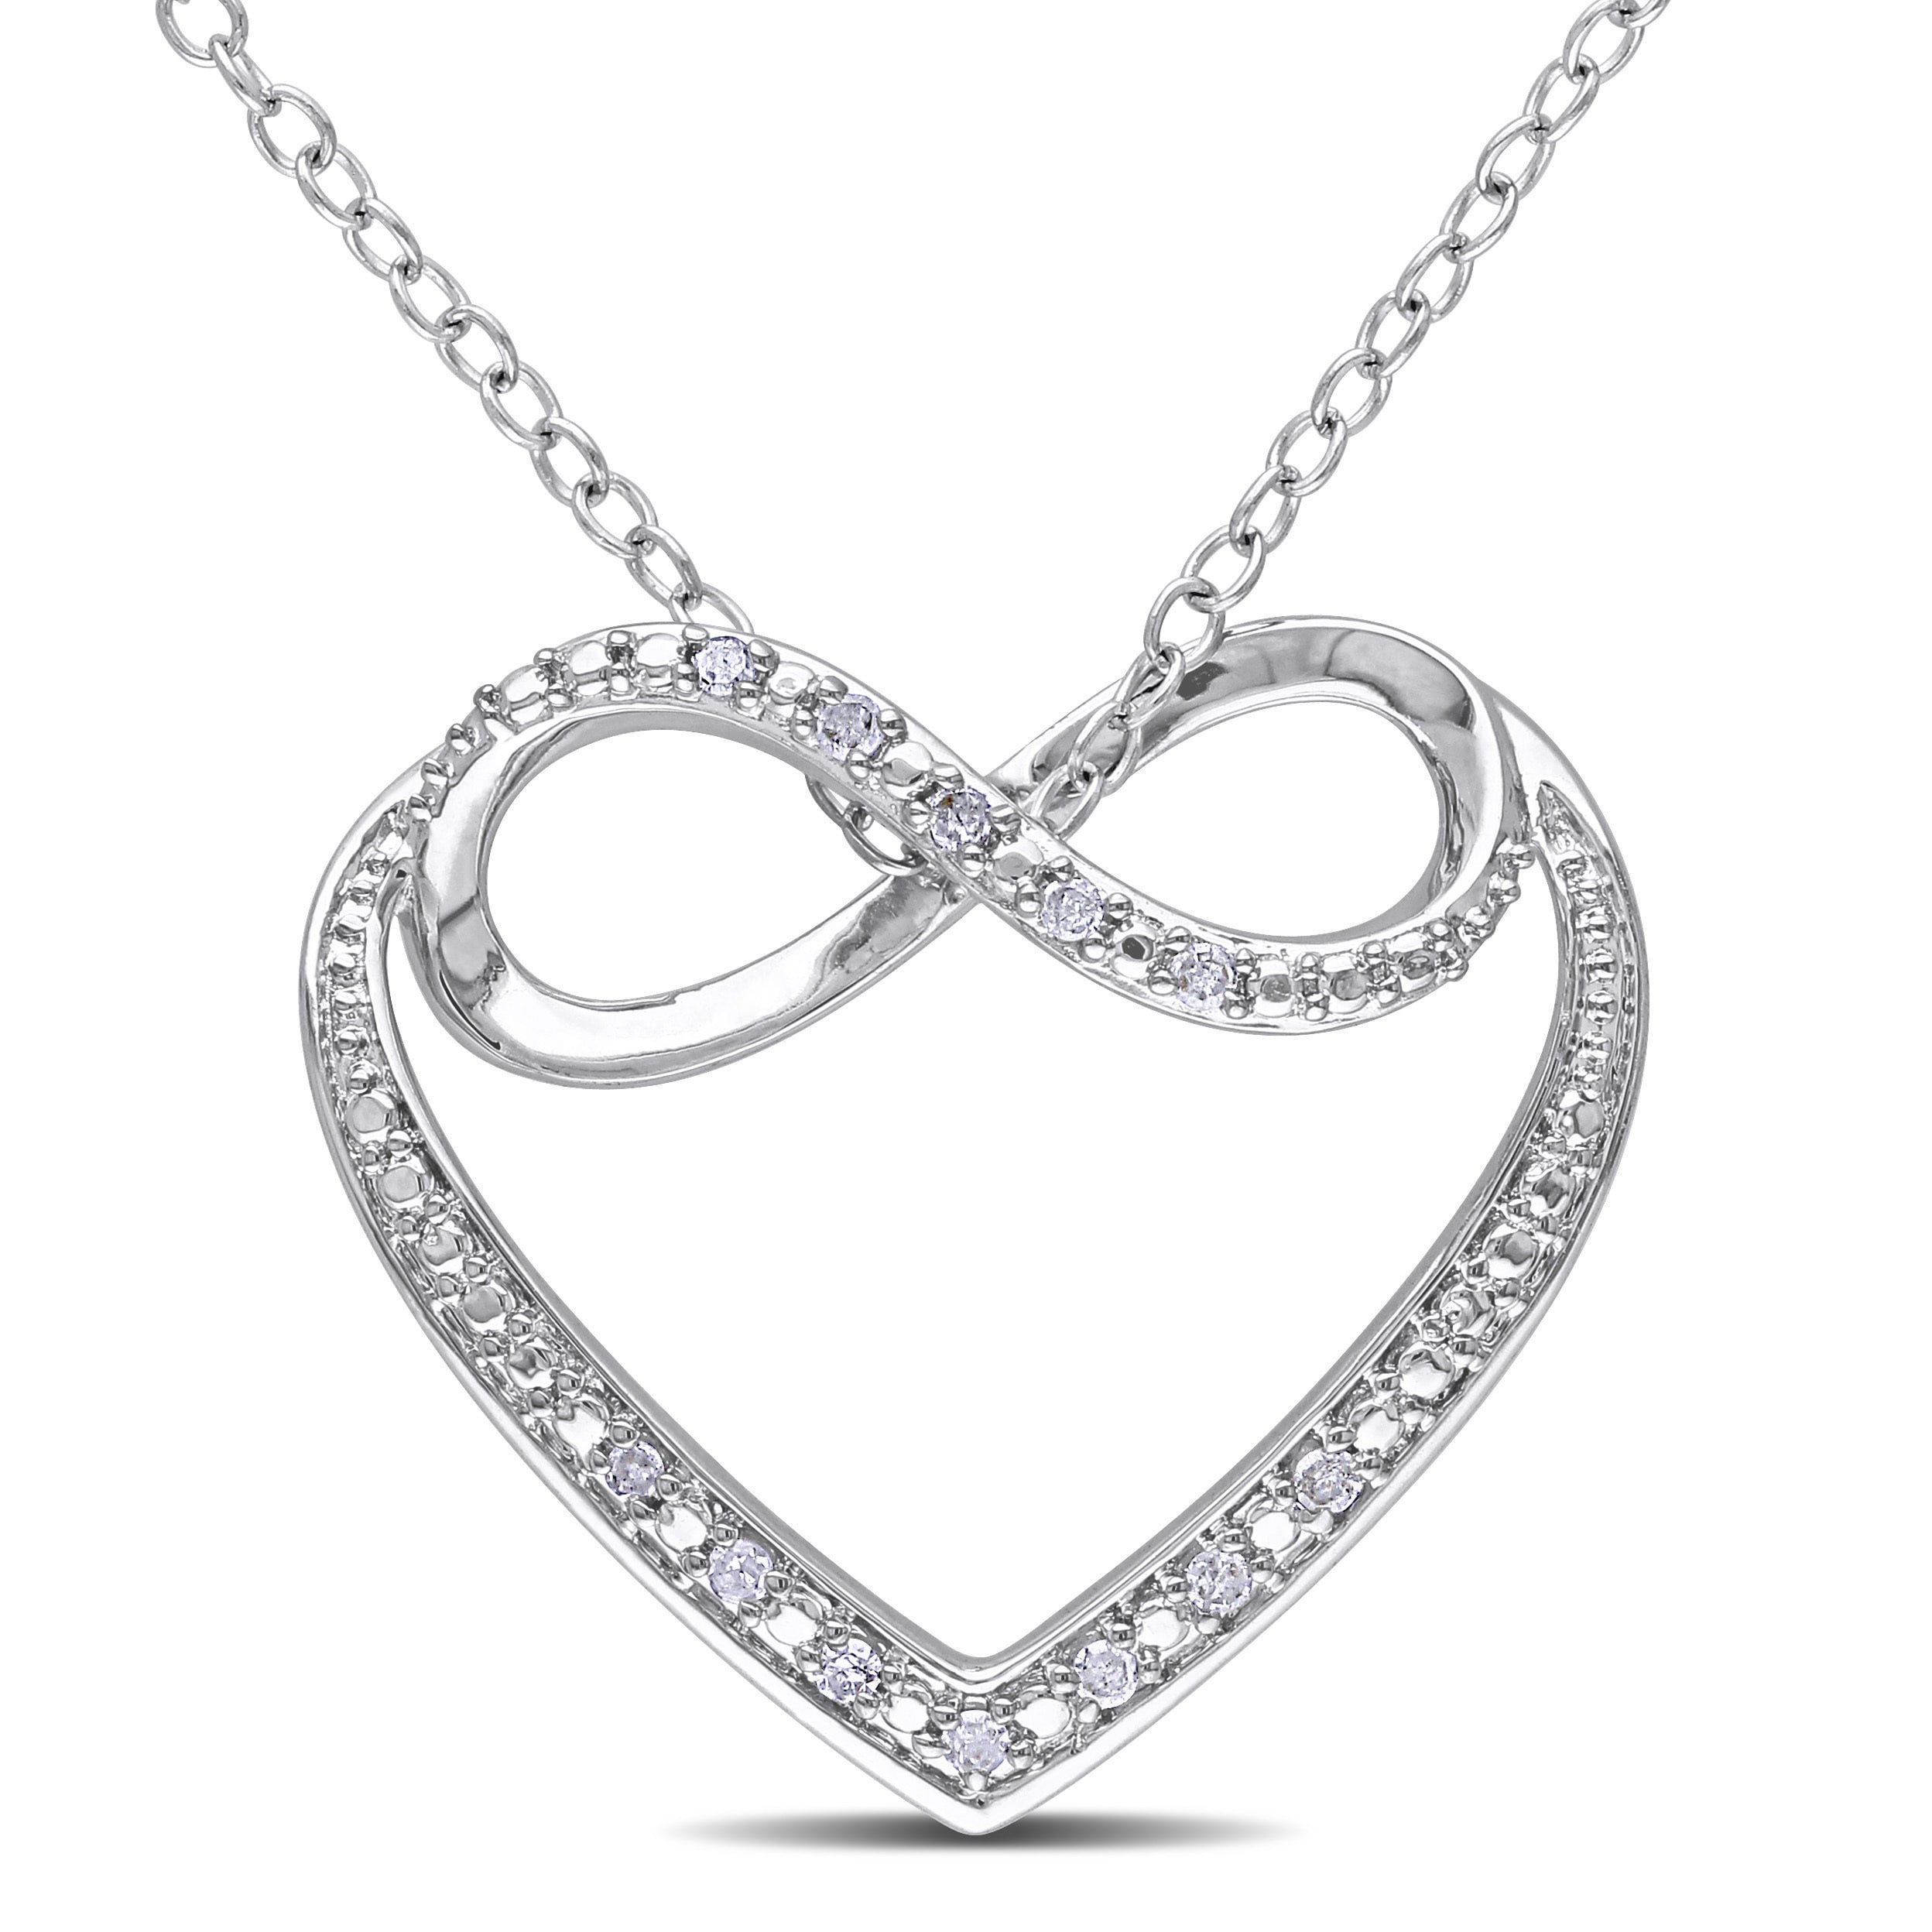 sterling heart product watches shipping diamond orders overstock miadora over jewelry free necklace on infinity accent silver